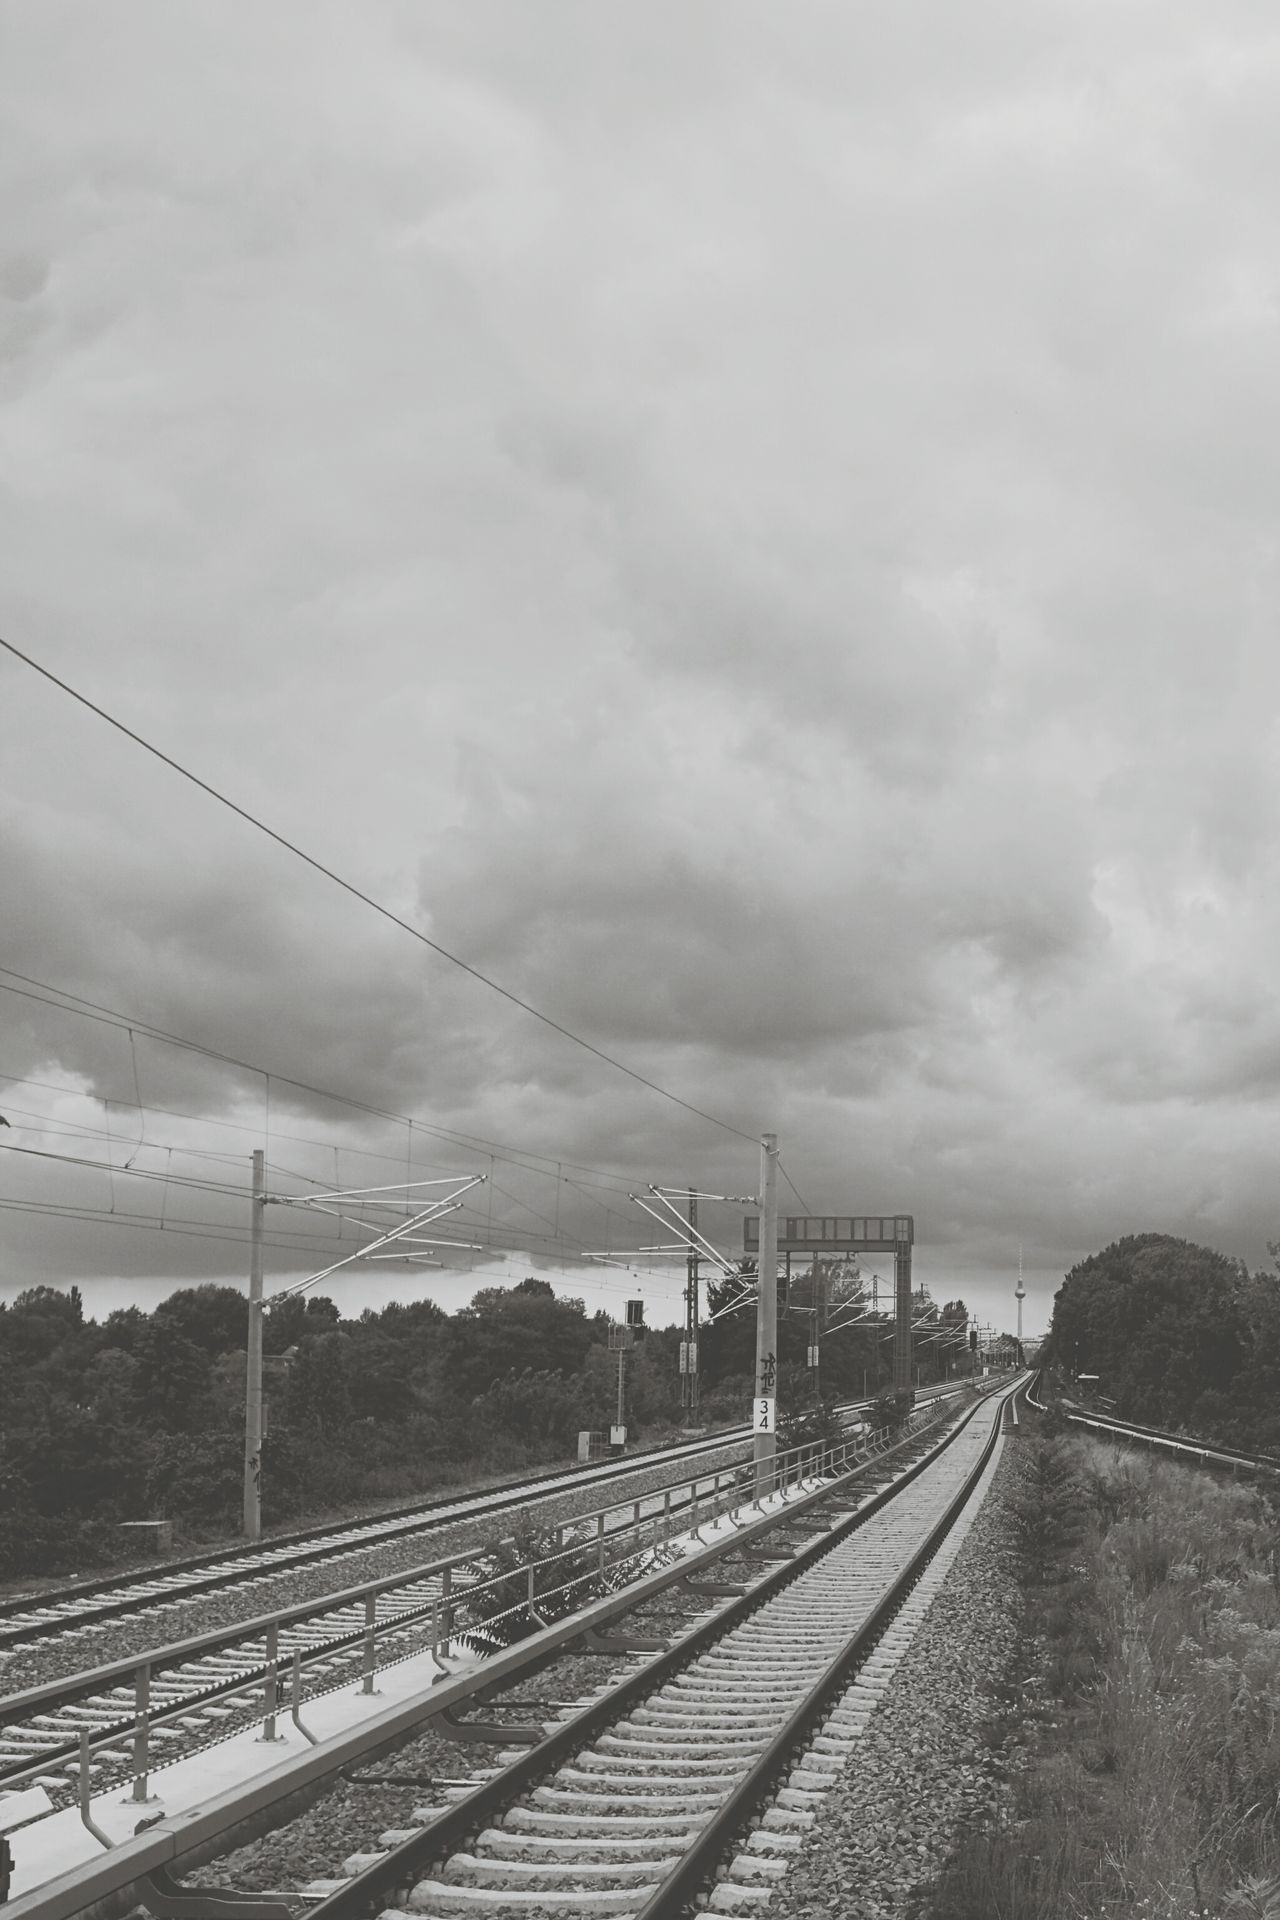 Train Tracks Trainphotography Train_of_our_world Berlin Ringbahn Fernsehturm Cityscapes Bwphotography Bwpicoftheday